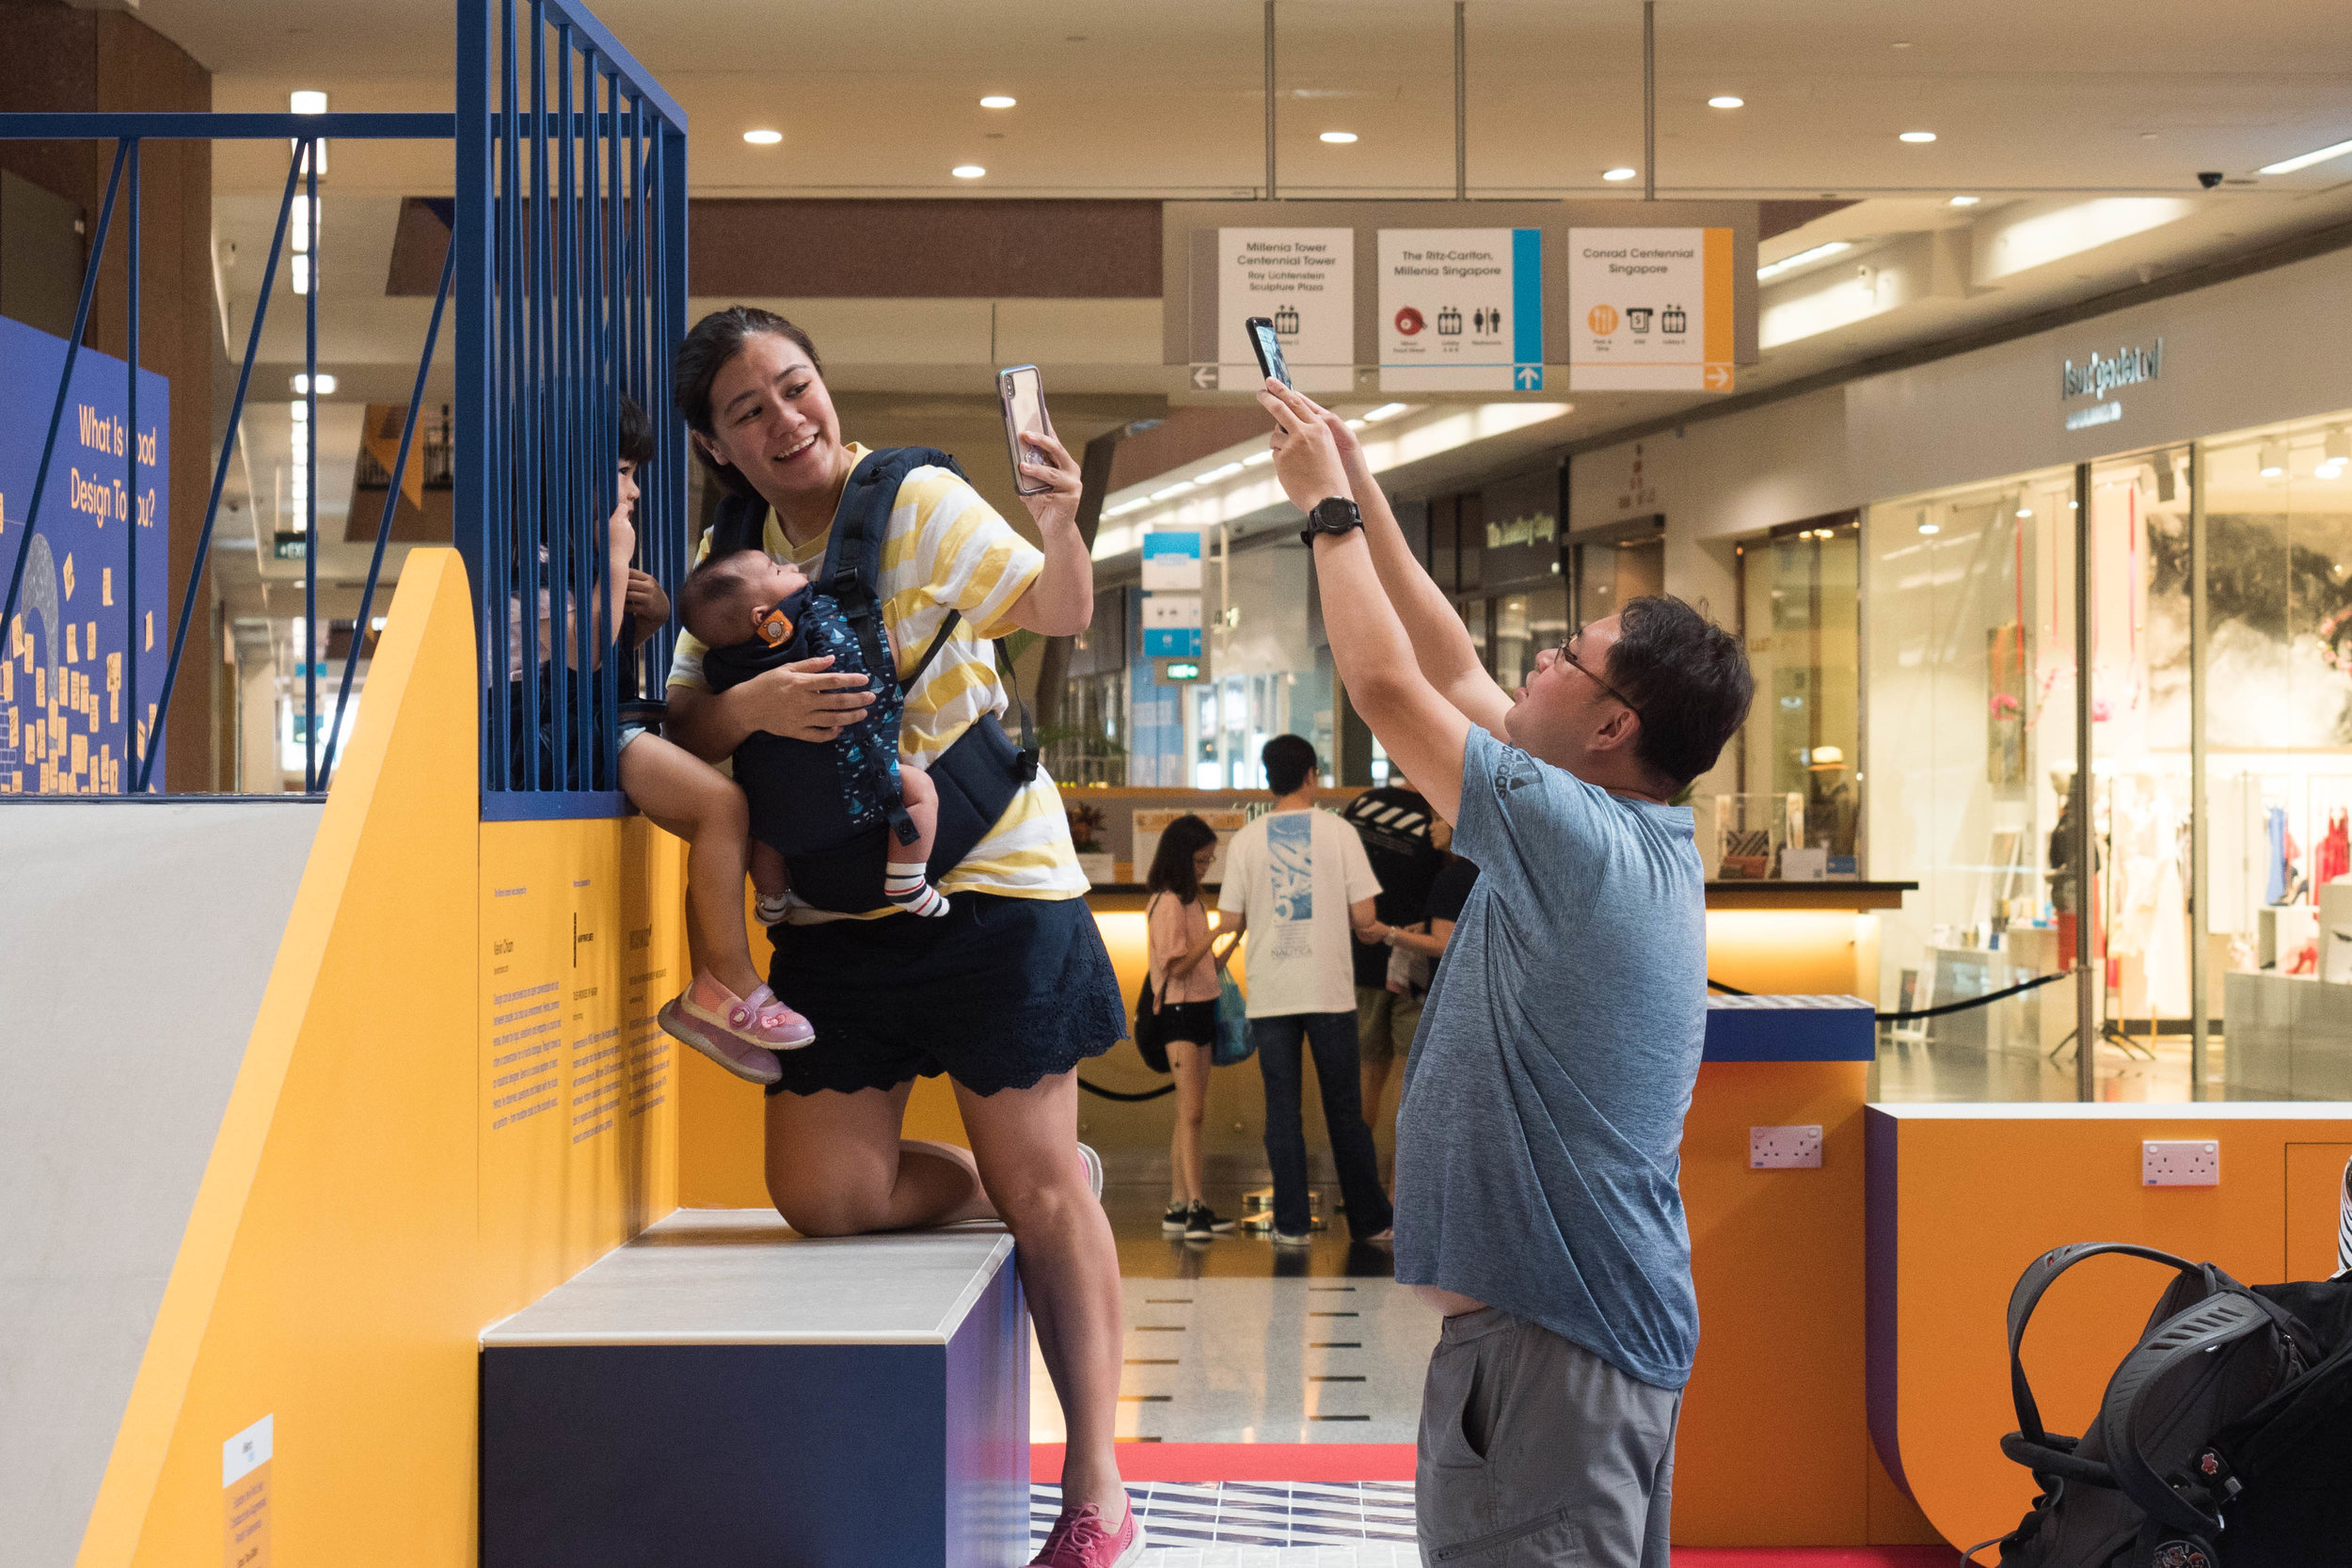 outeredit - millenia walk design play space - family